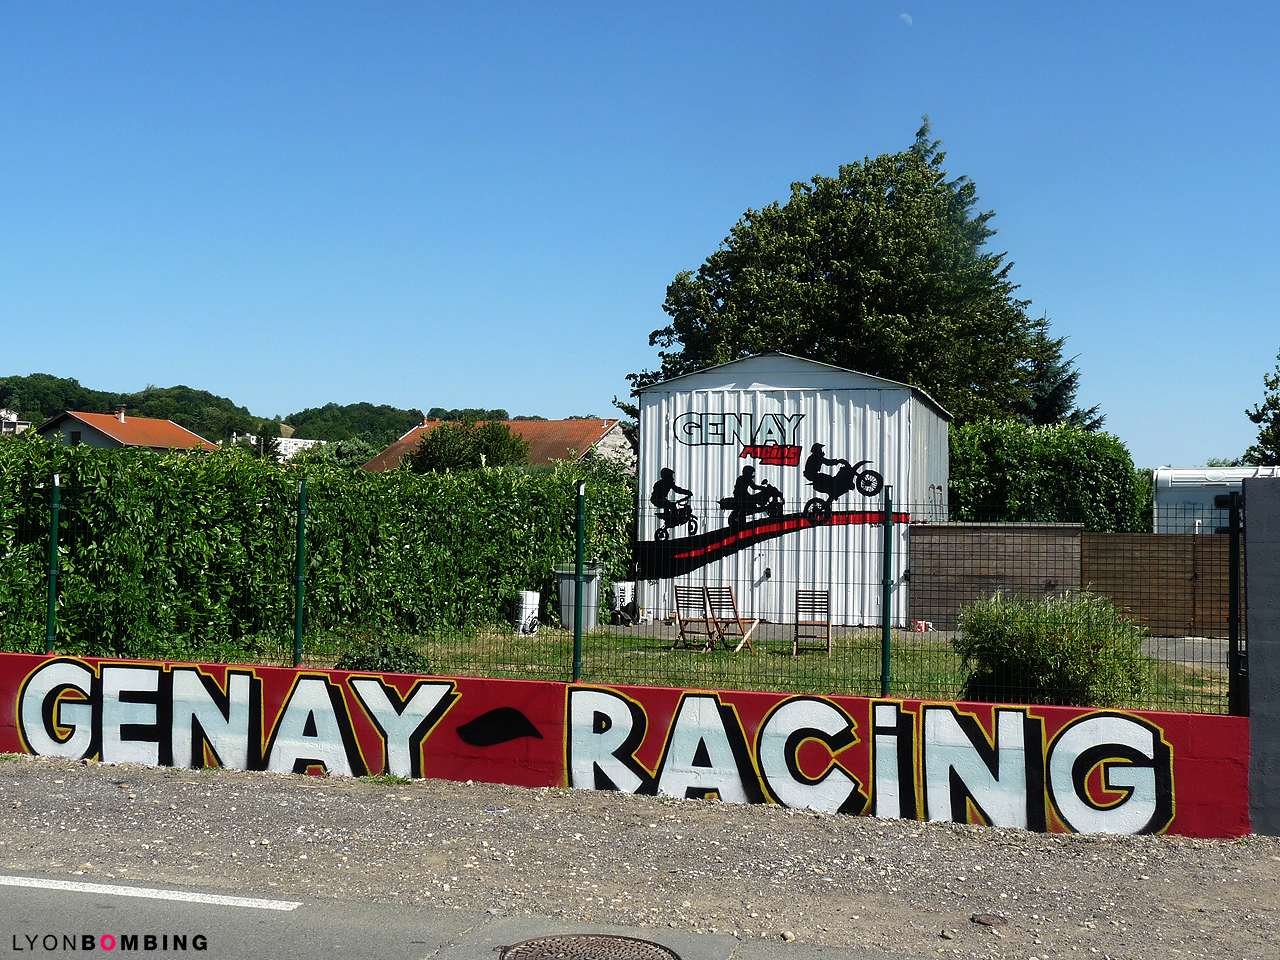 Magasin Genay Racing